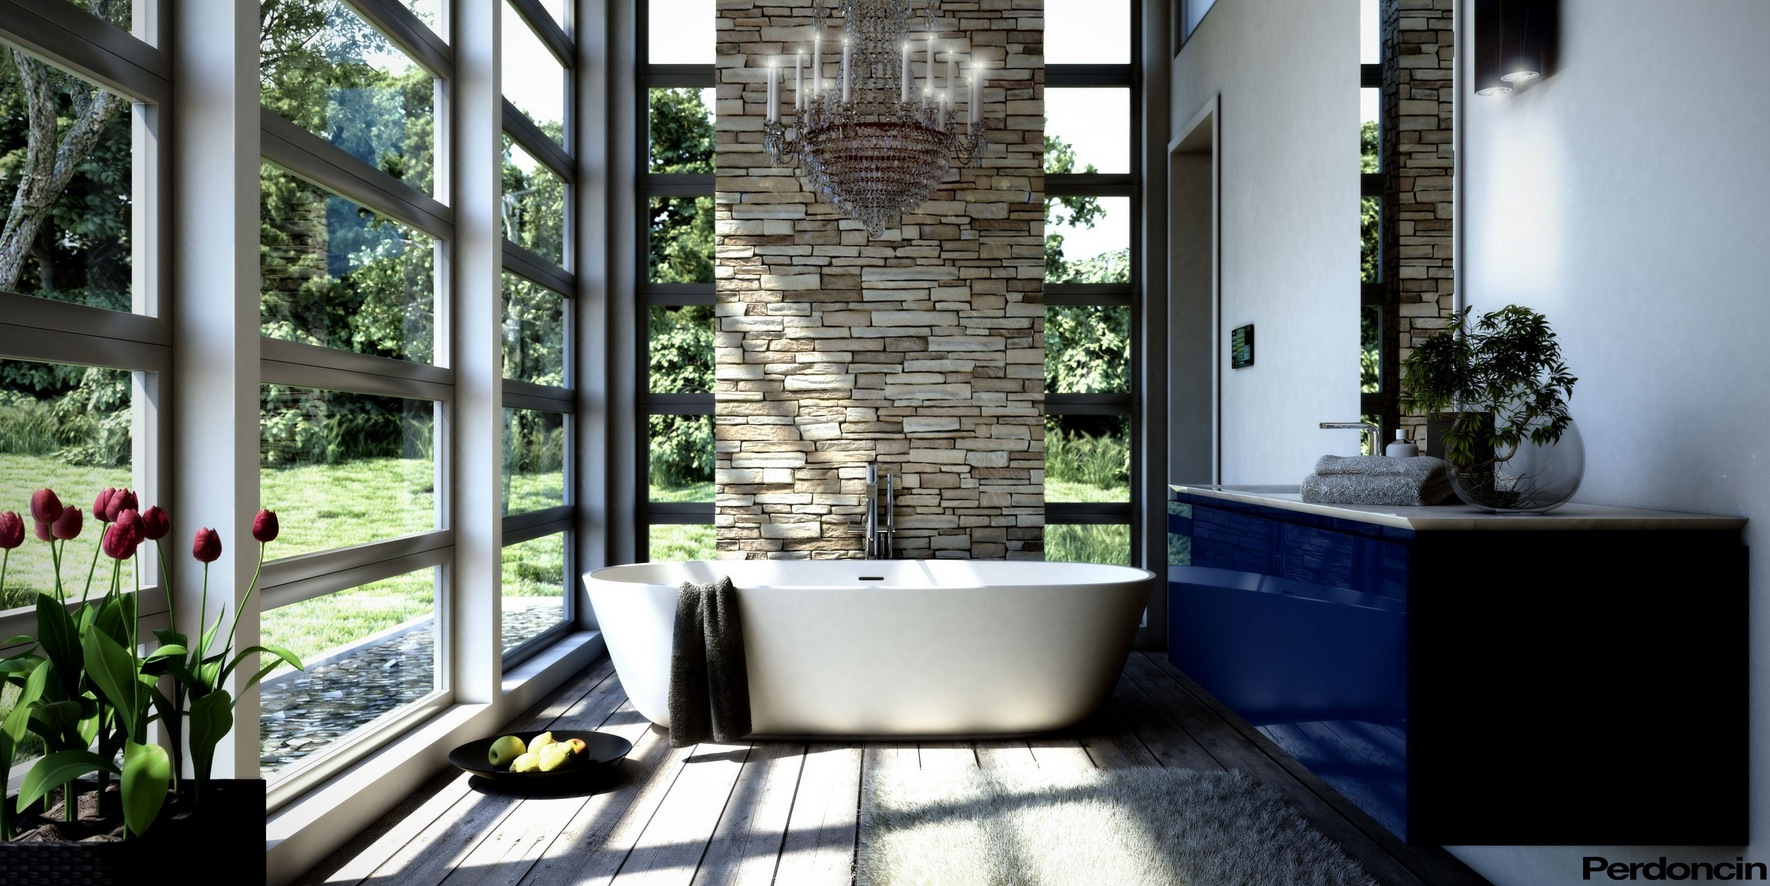 Bathtubs with a view of nature for Deco salle de bain nature zen